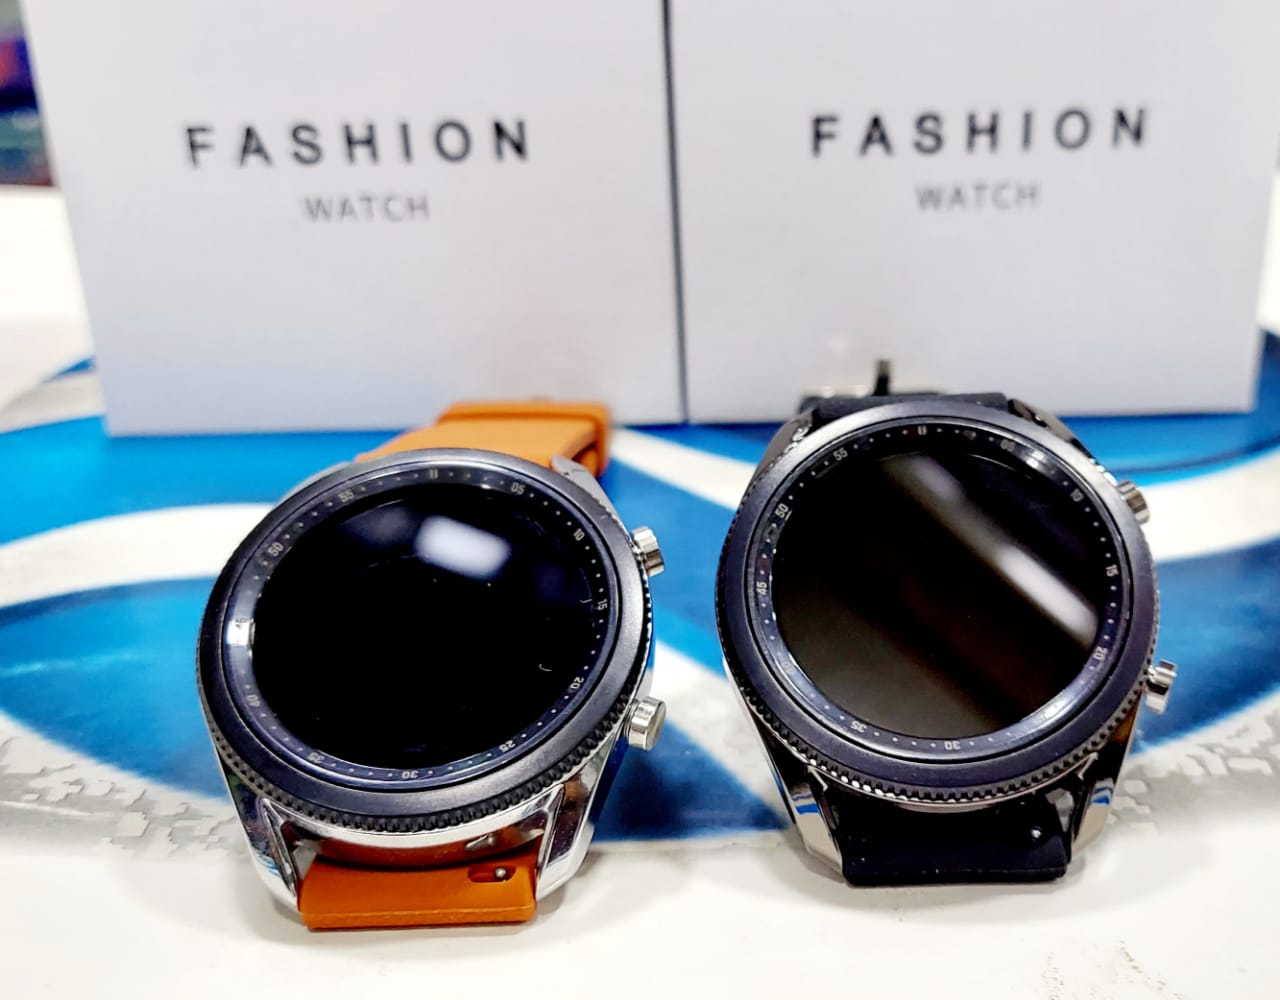 F5 Smart Watch Round Shape / Custom Watch Face / Bluetooth Call / 20mm  Fashion Smart Watch: Buy Online at Best Prices in Pakistan   Daraz.pk